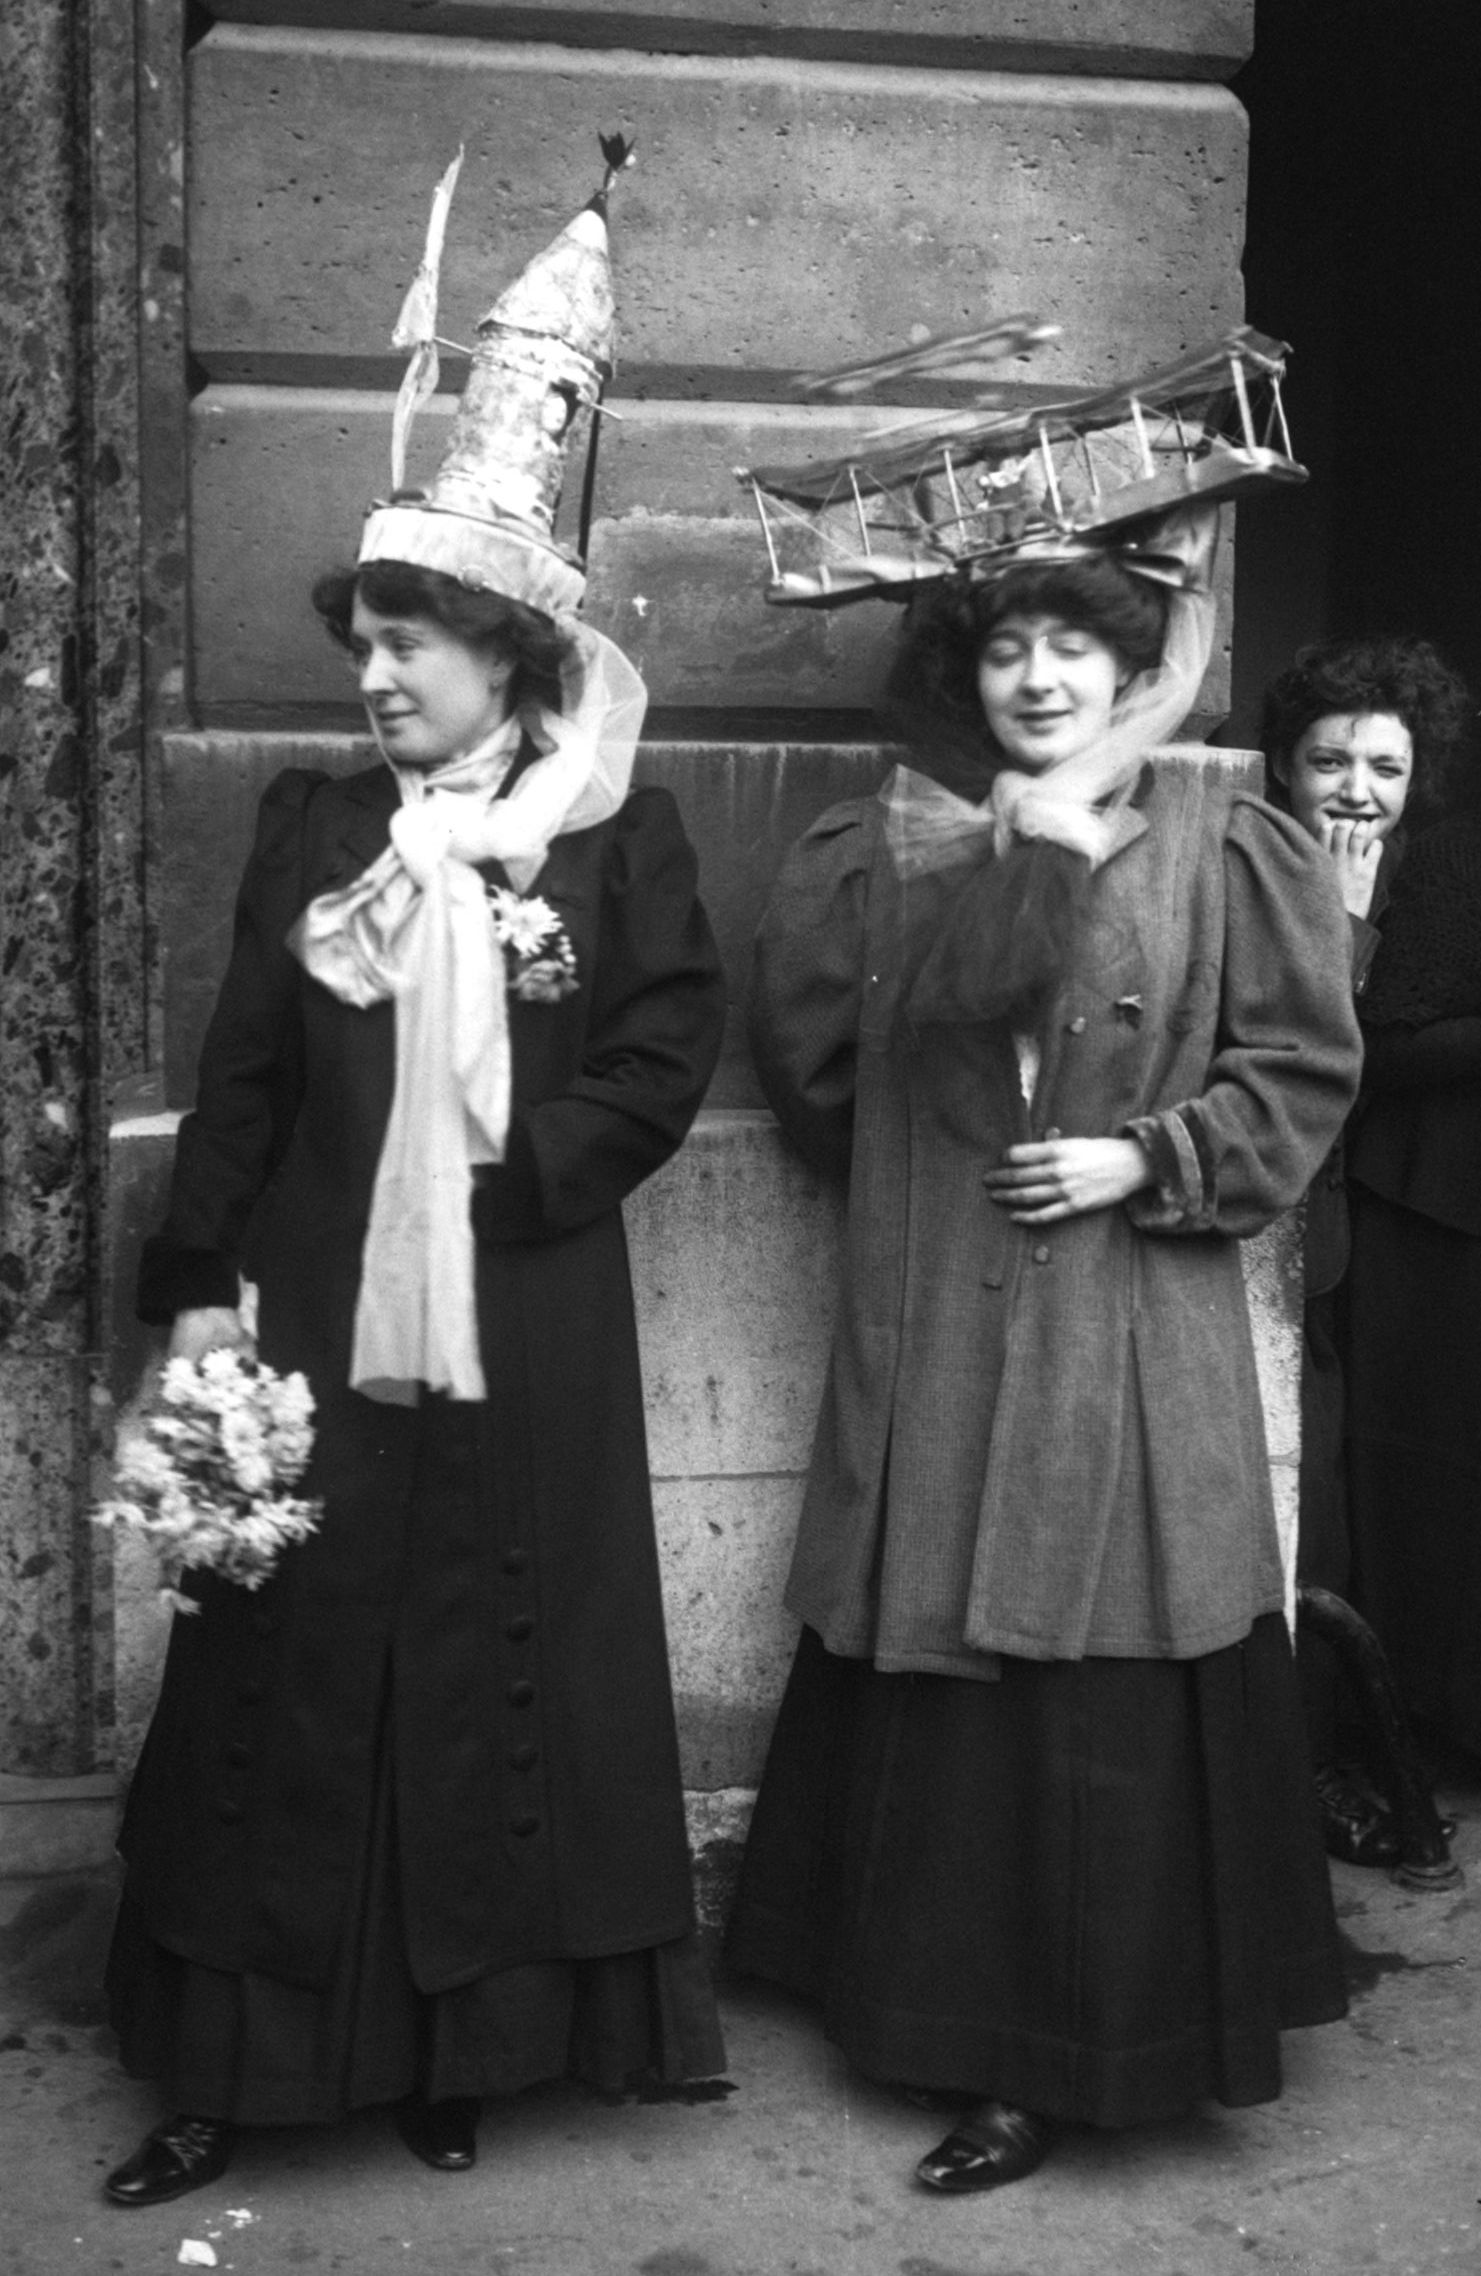 Fichier:Catherinettes, Paris, 1909.jpg